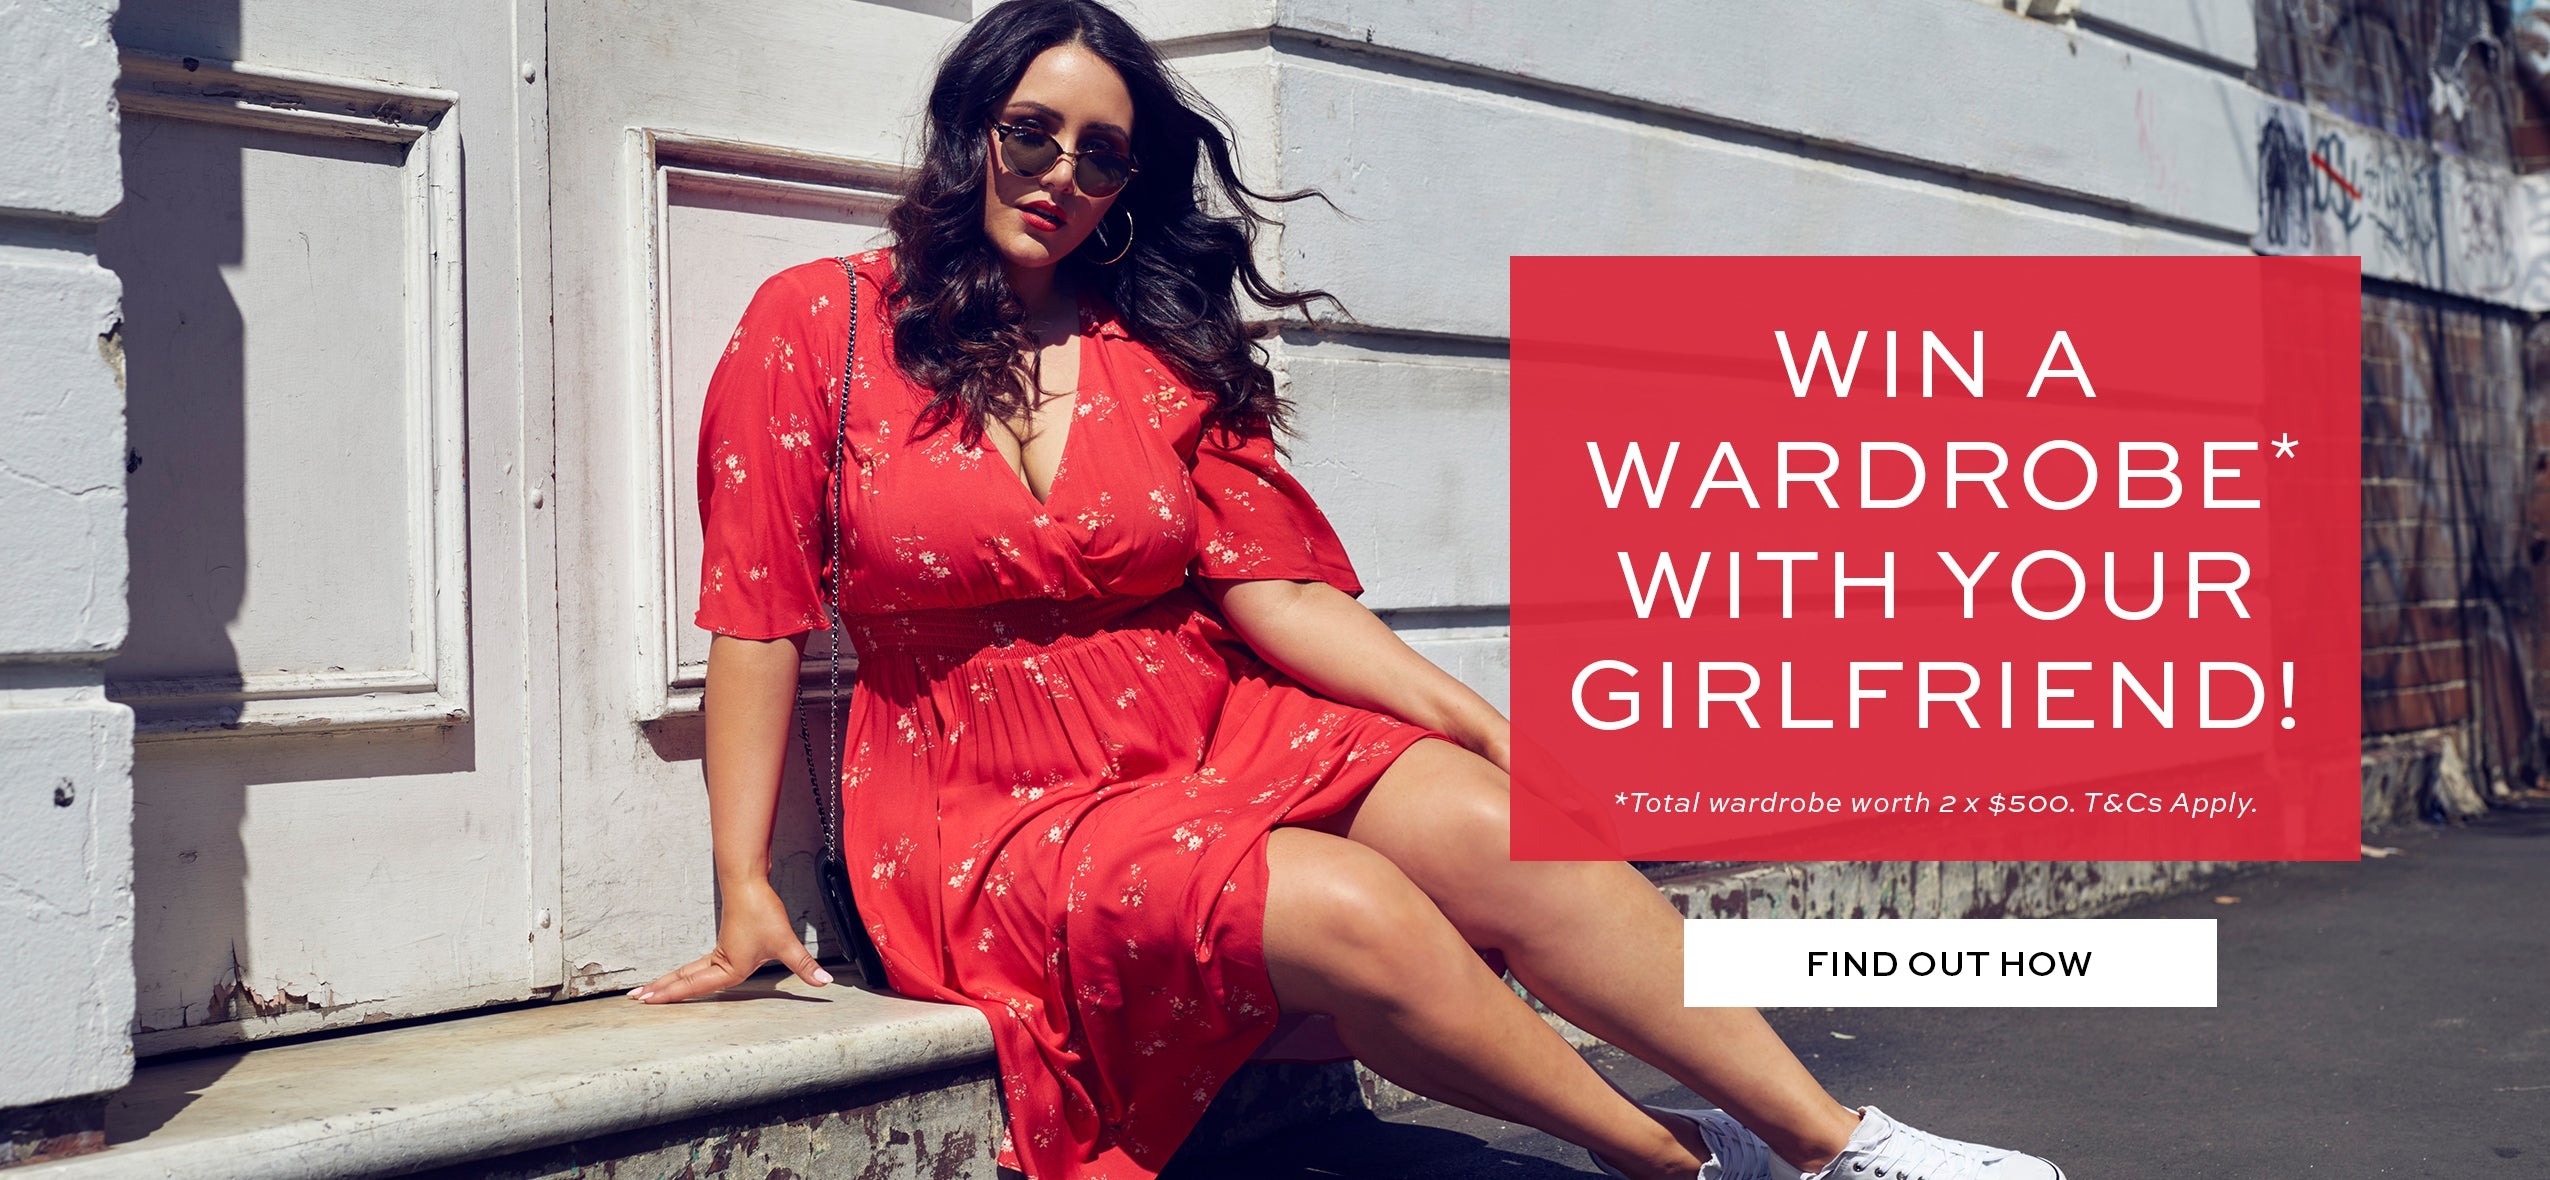 Win A Wardrobe With Your Girlfriend